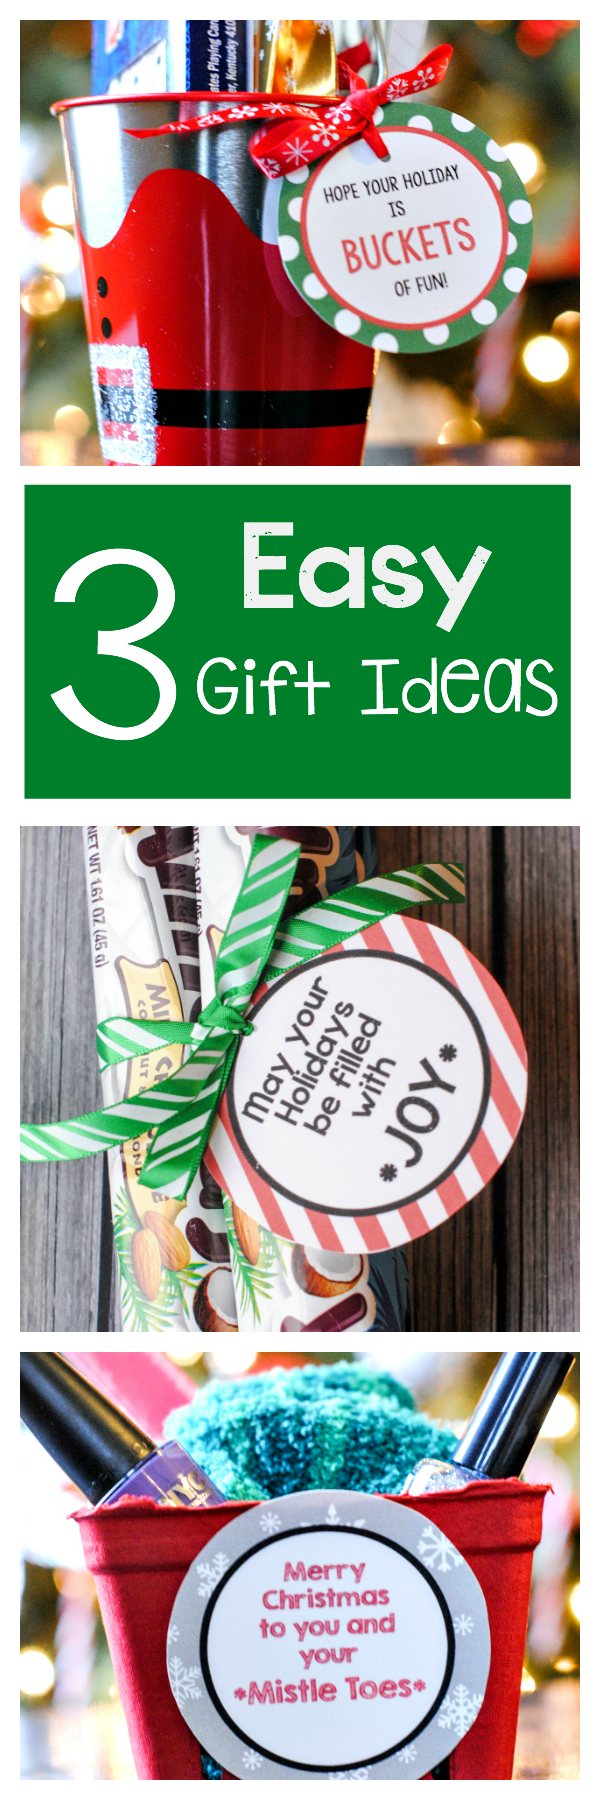 3 Easy Christmas Gift Ideas for Friends, Neighbors or Co-workers this holiday season! Simple ideas that your friends will love #christmasgiftideas